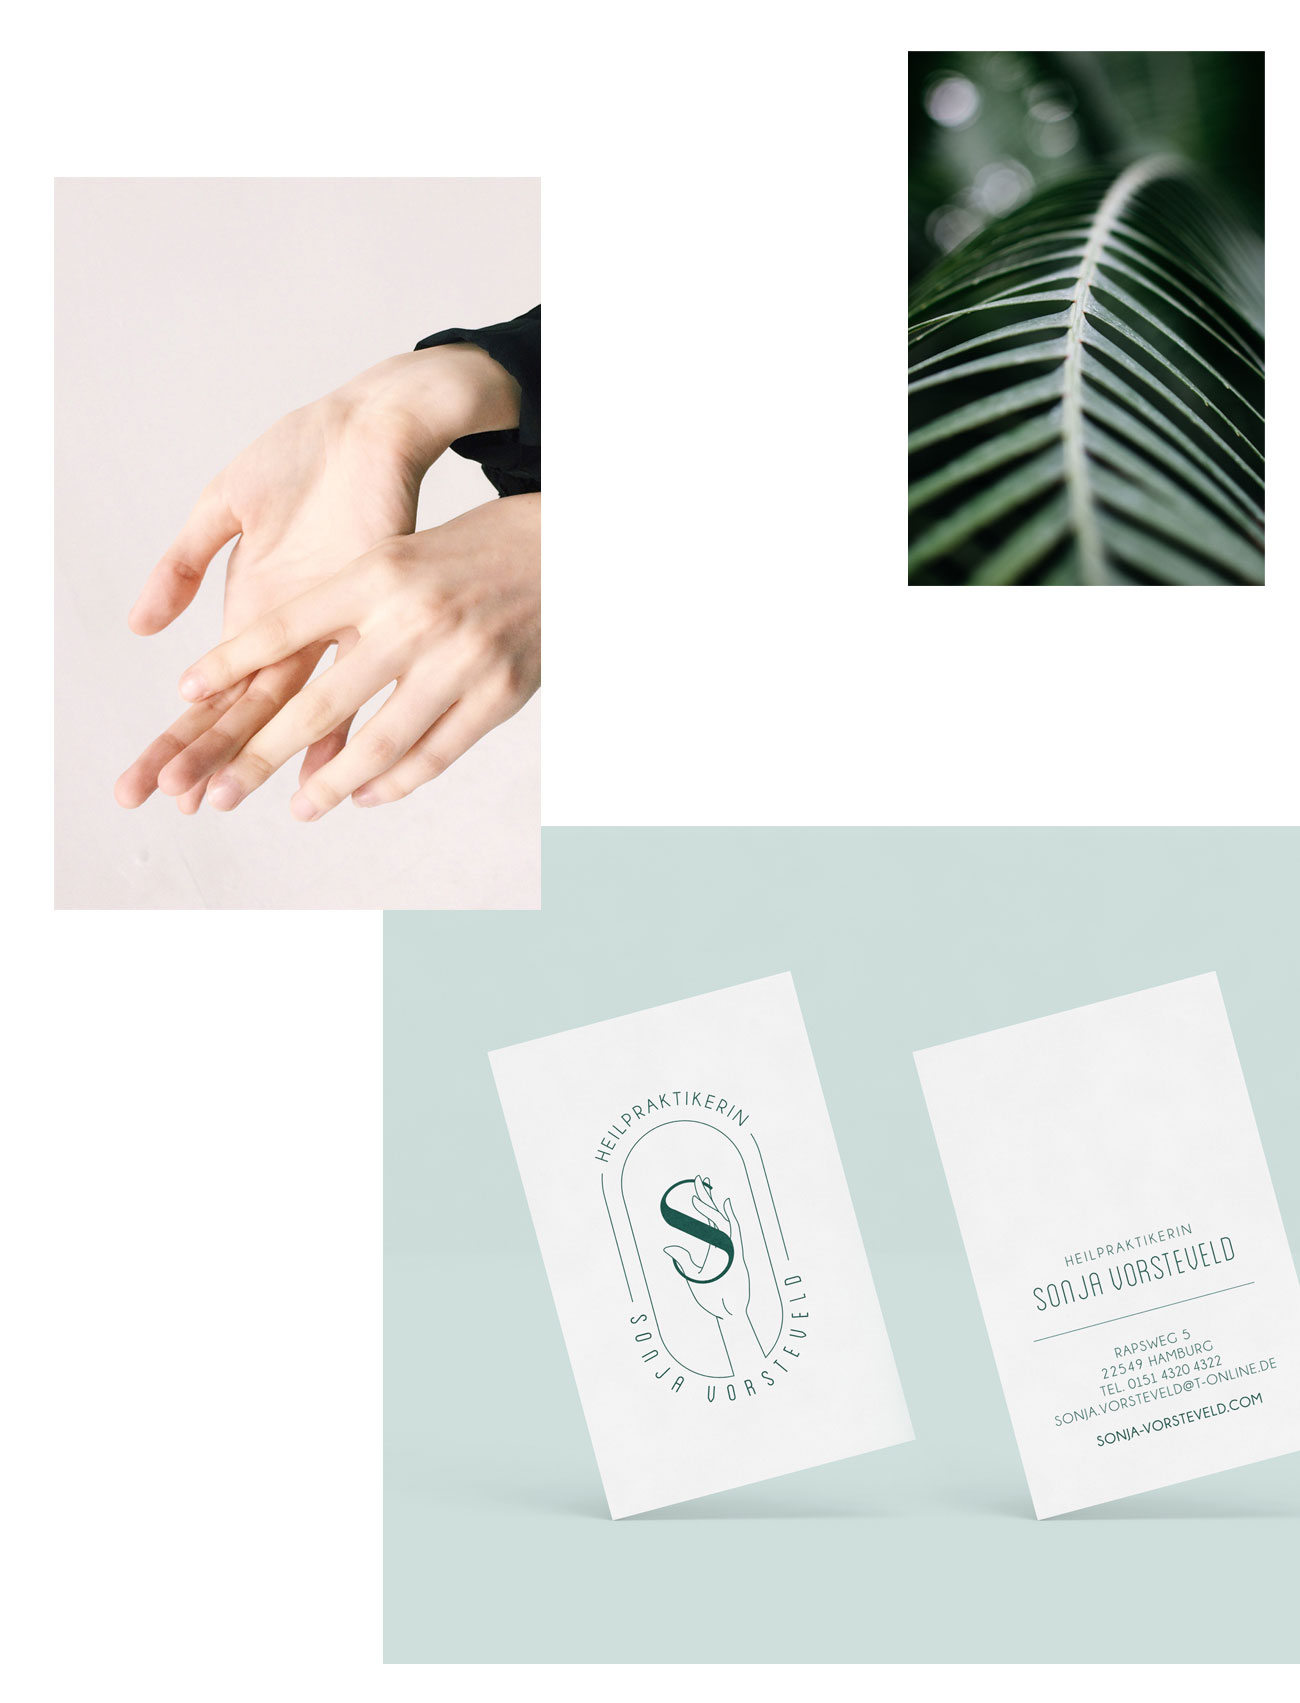 logo design branding and visual identity for Sonja Vorsteveld design by Poppyonto